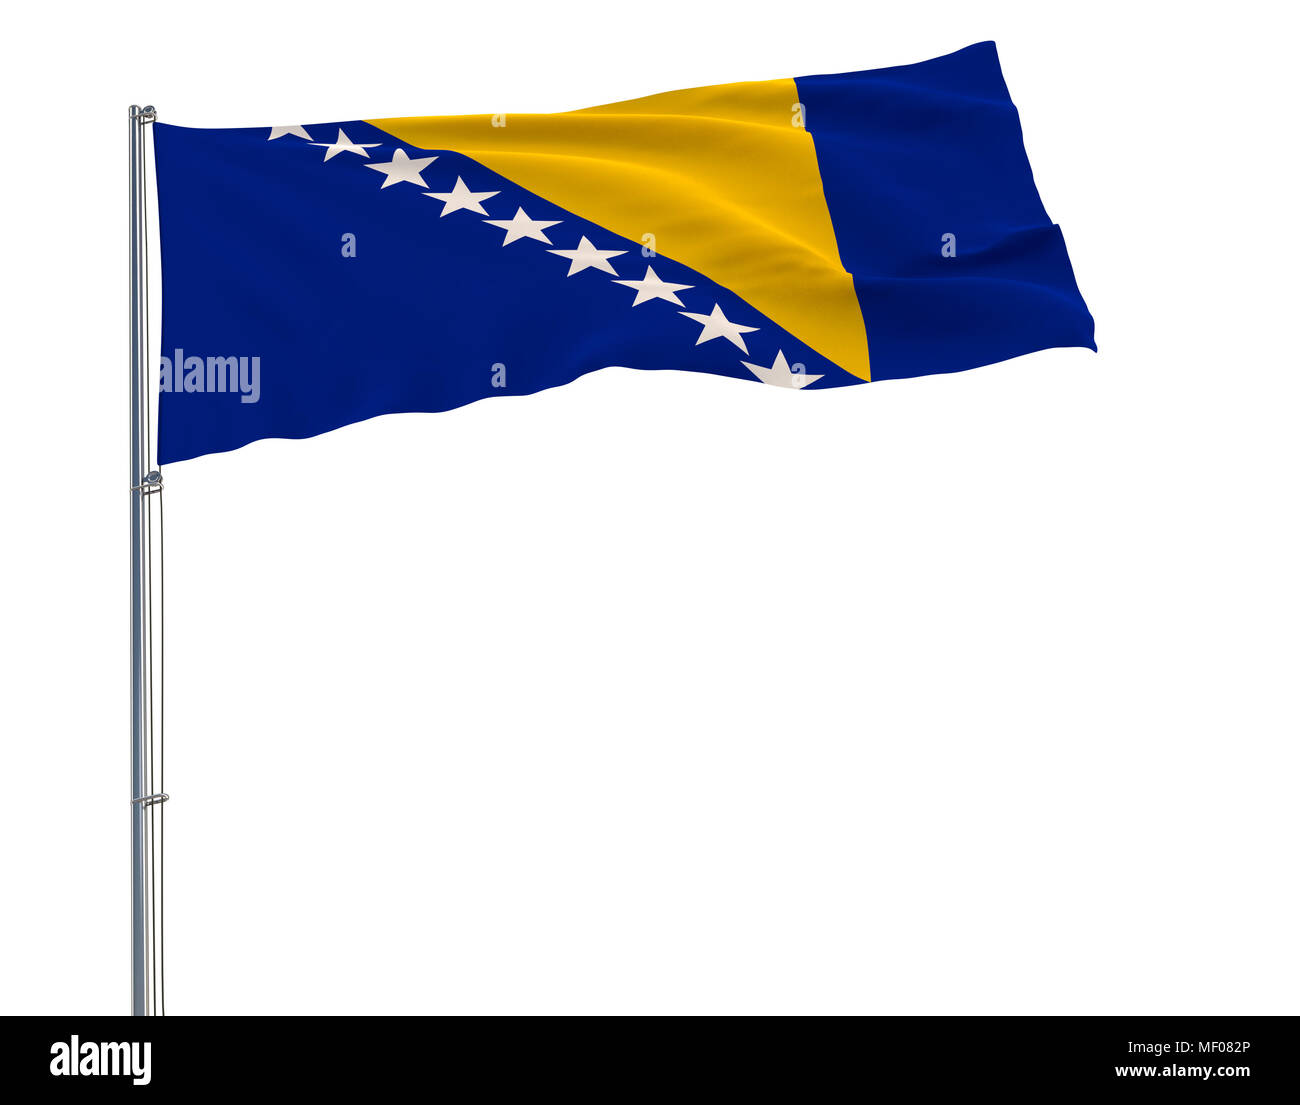 Isolate flag of Bosnia and Herzegovina on a flagpole fluttering in the wind on a white background, 3d rendering - Stock Image